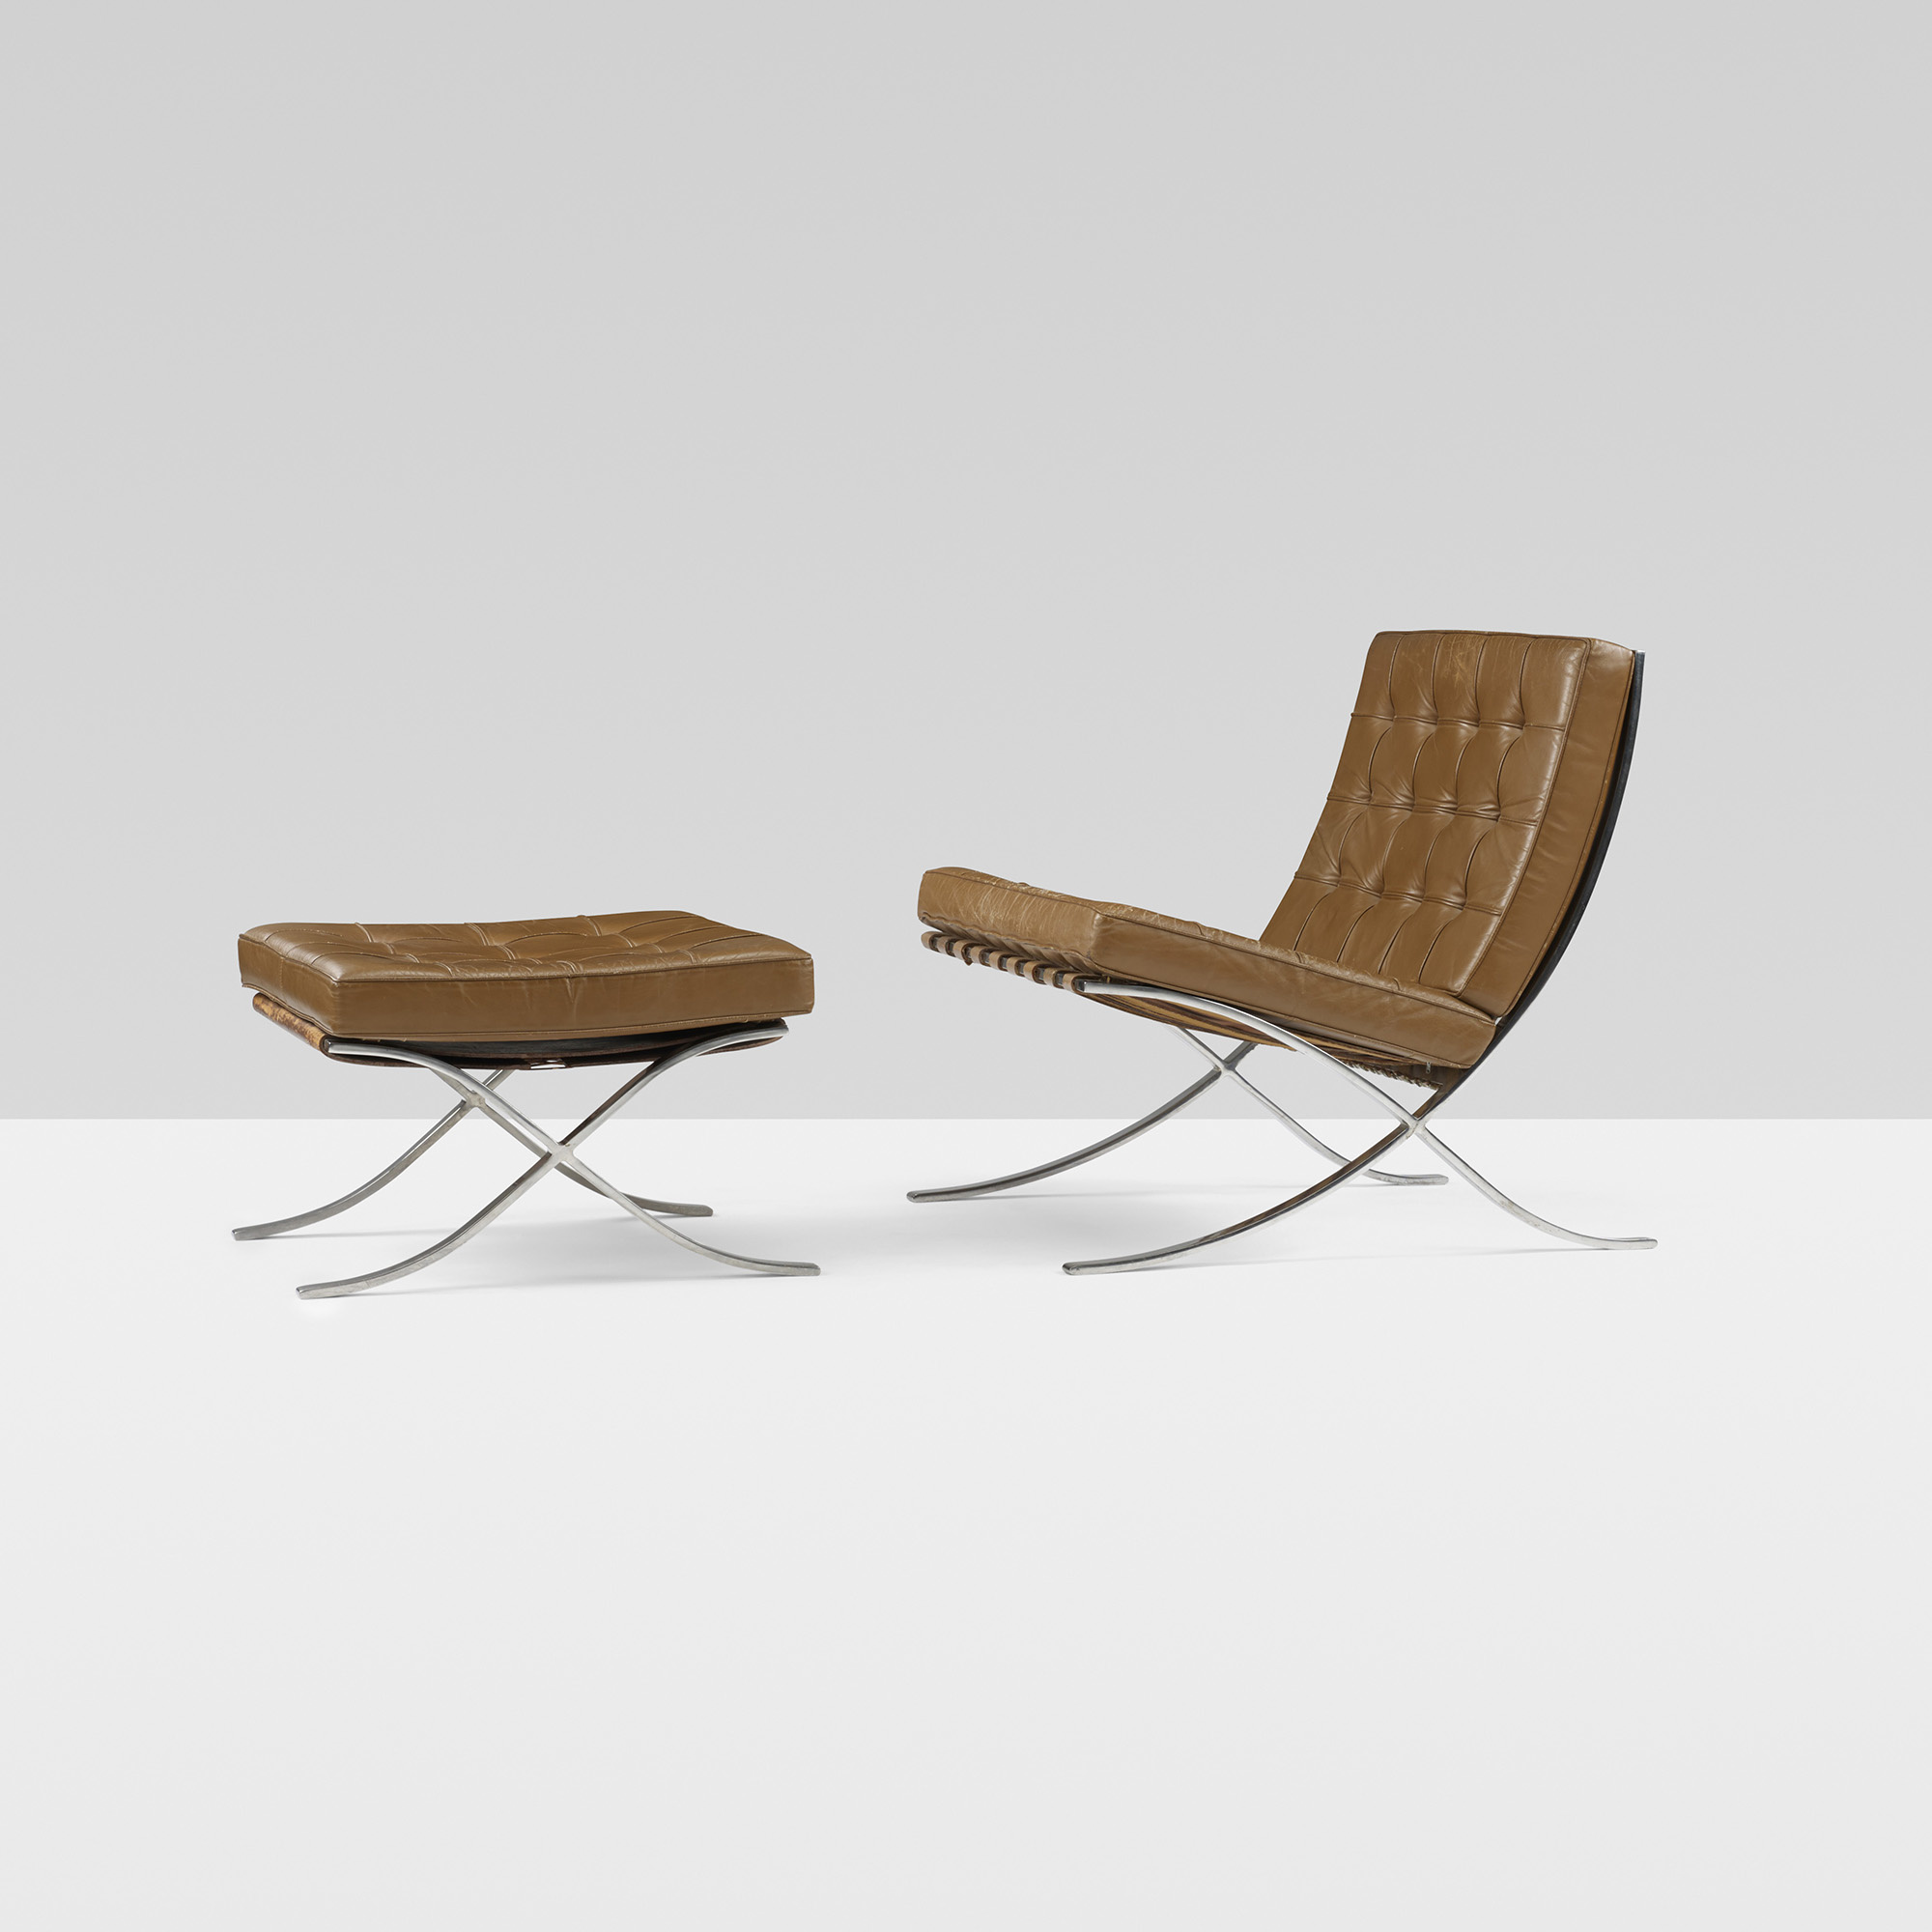 Barcelona Chairs For Sale 155 Ludwig Mies Van Der Rohe Pair Of Barcelona Chair And